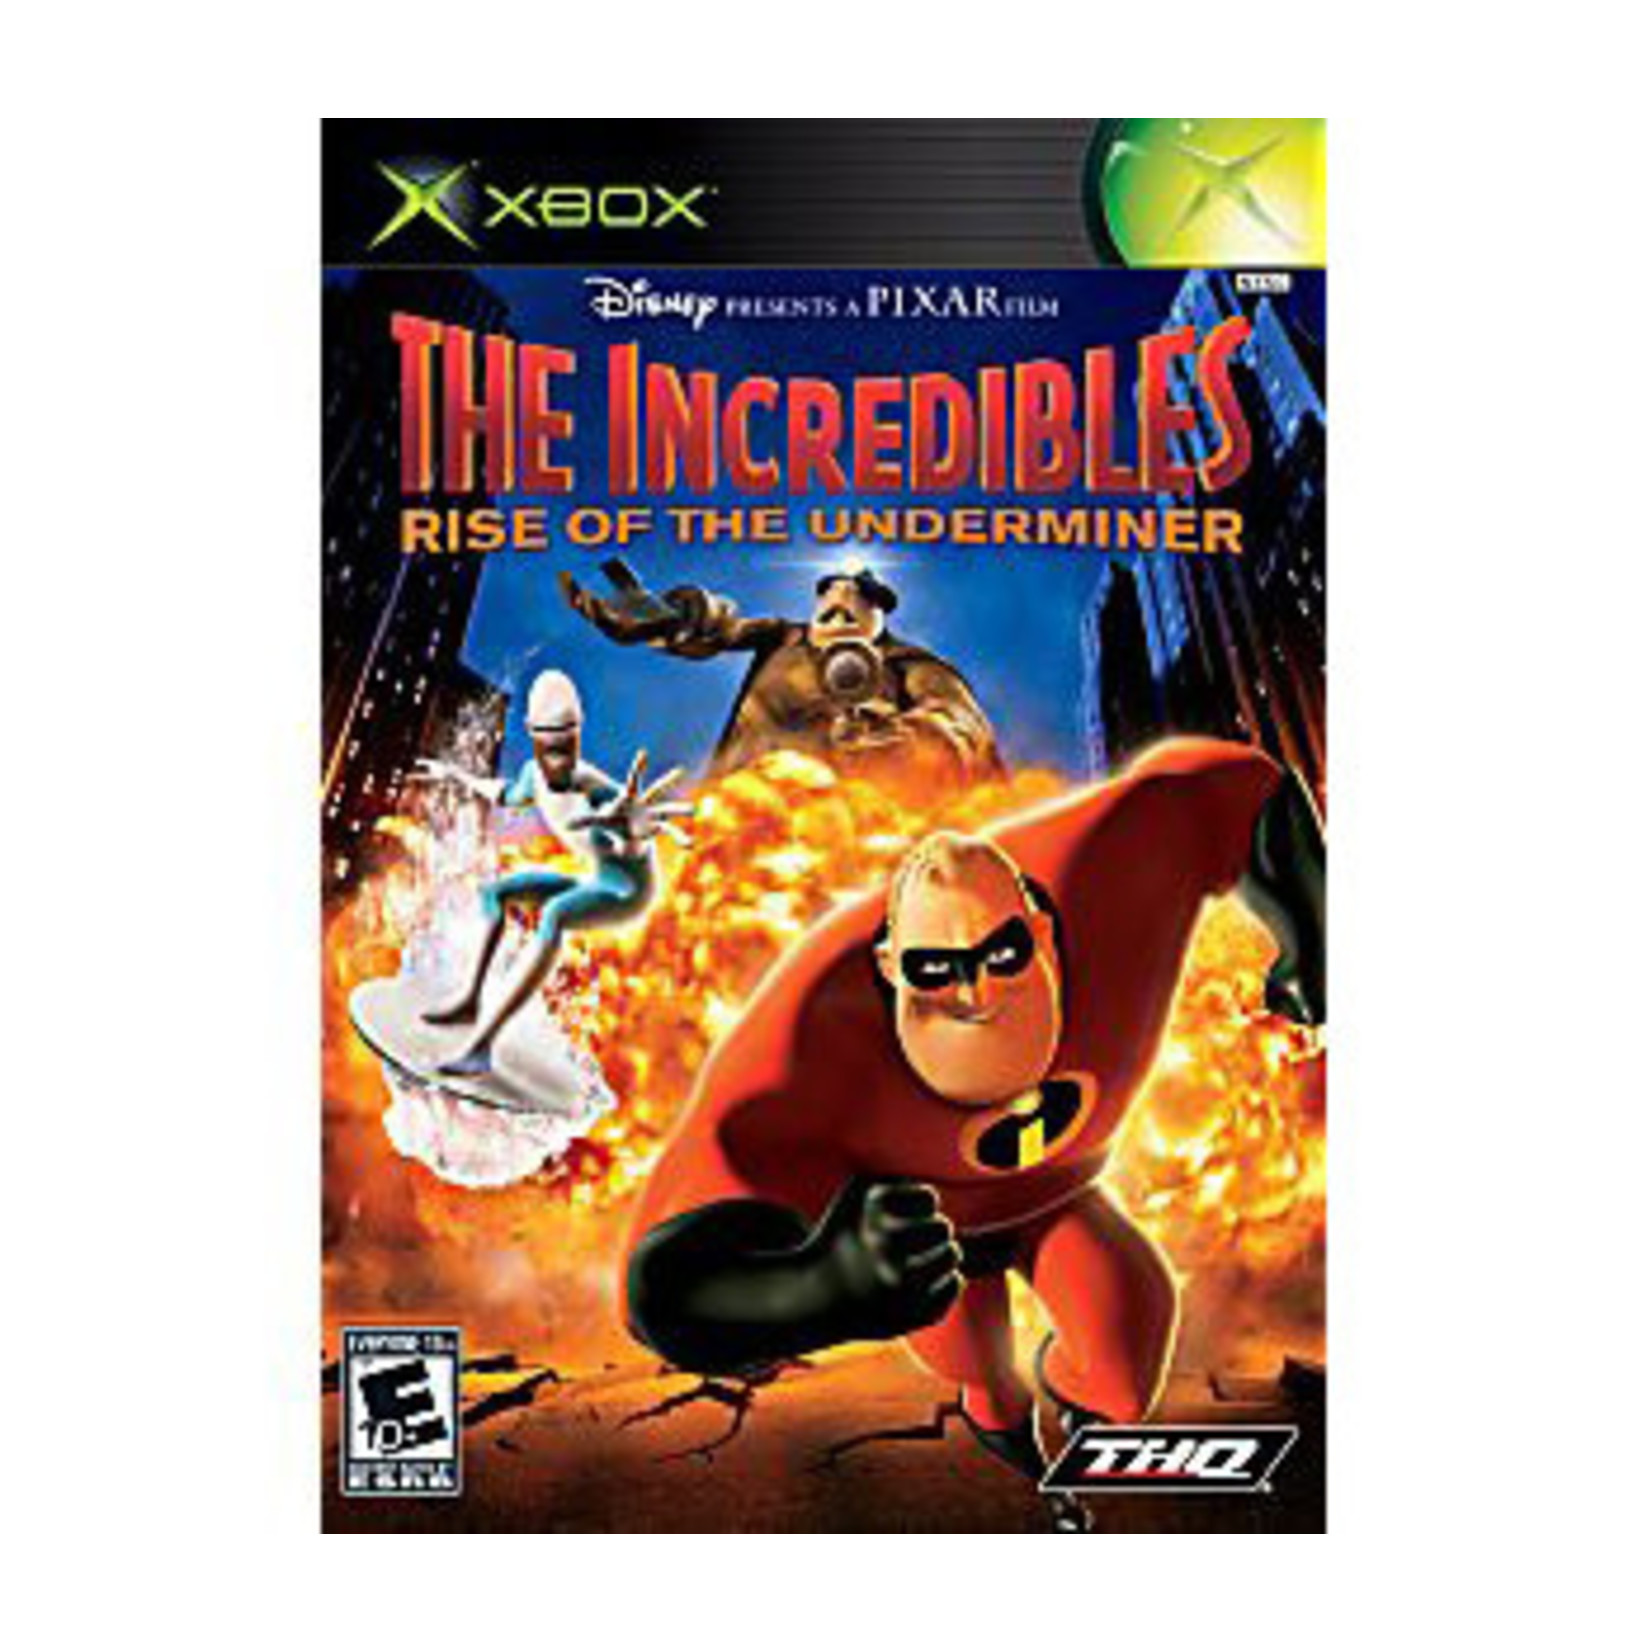 XBU-The Incredibles Rise of The Underminer